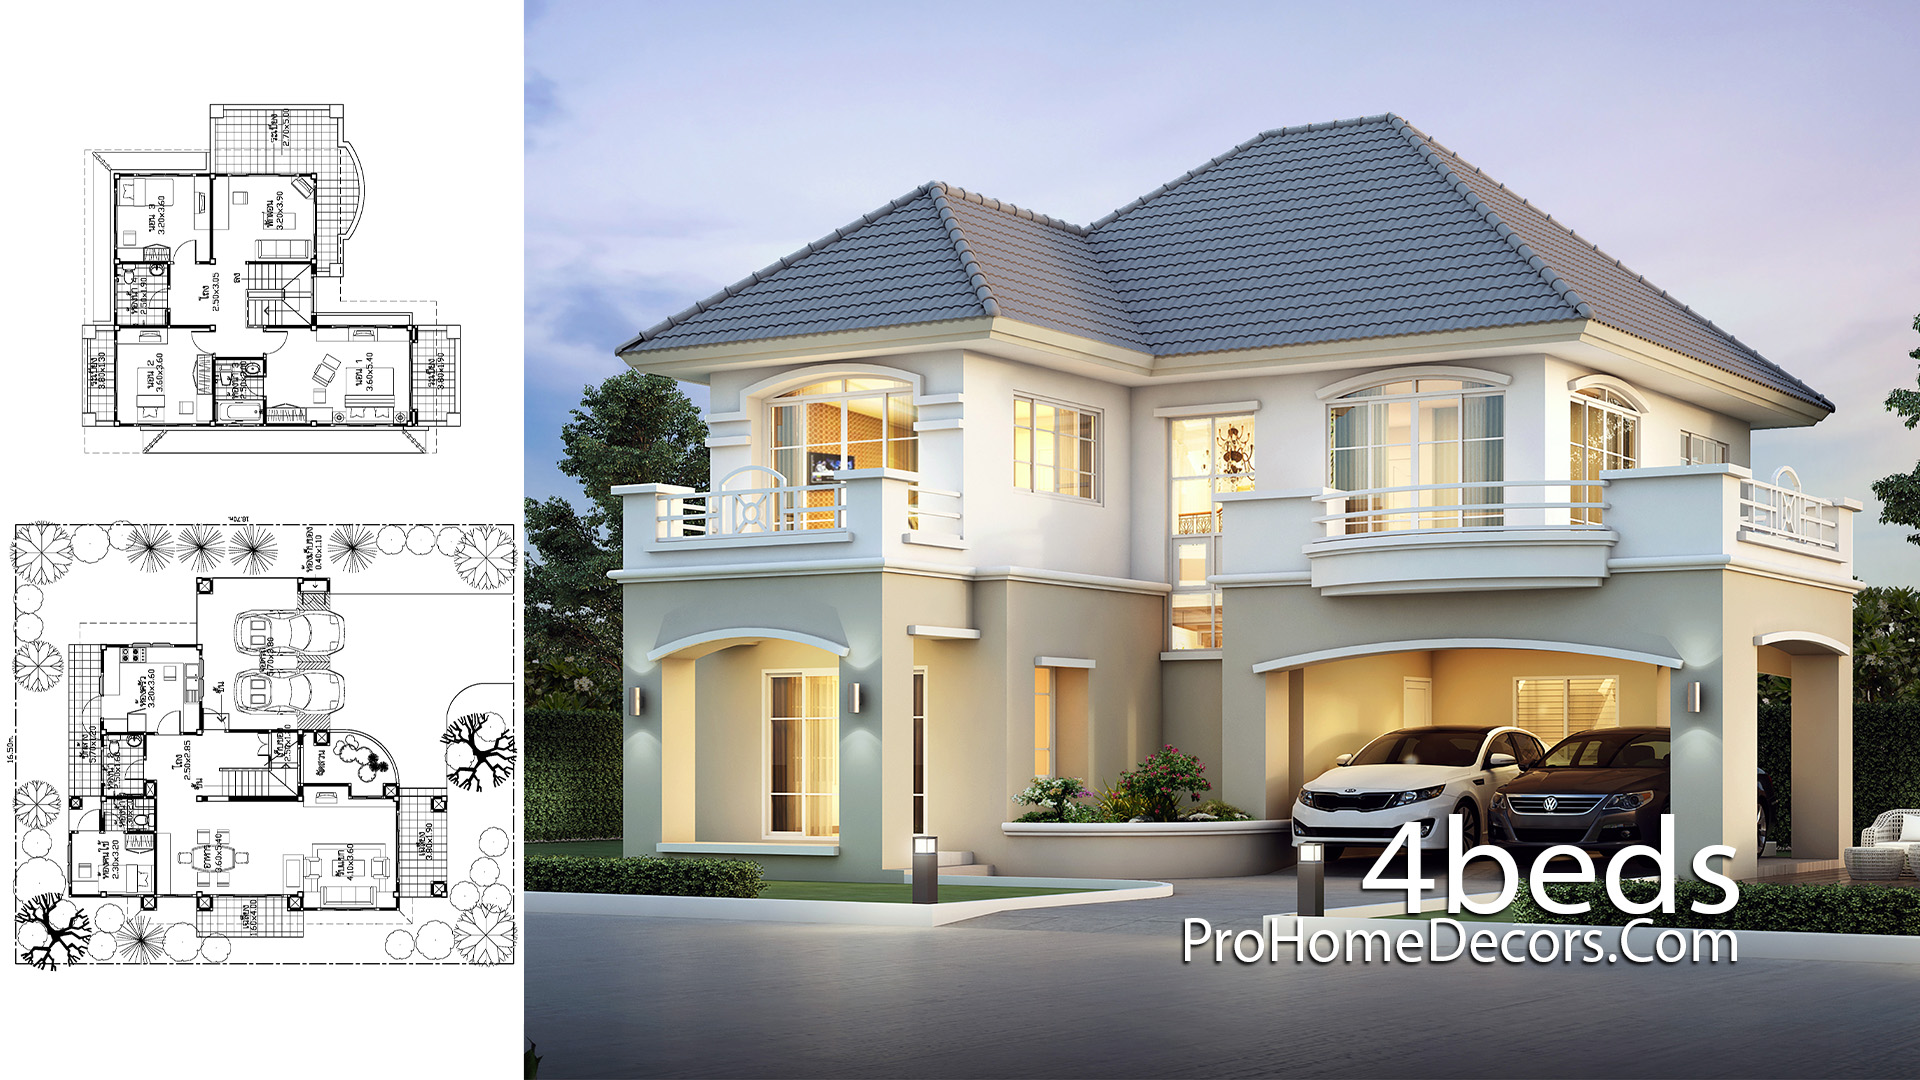 House Plans Plot 16x18 Meter with 4 Bedrooms